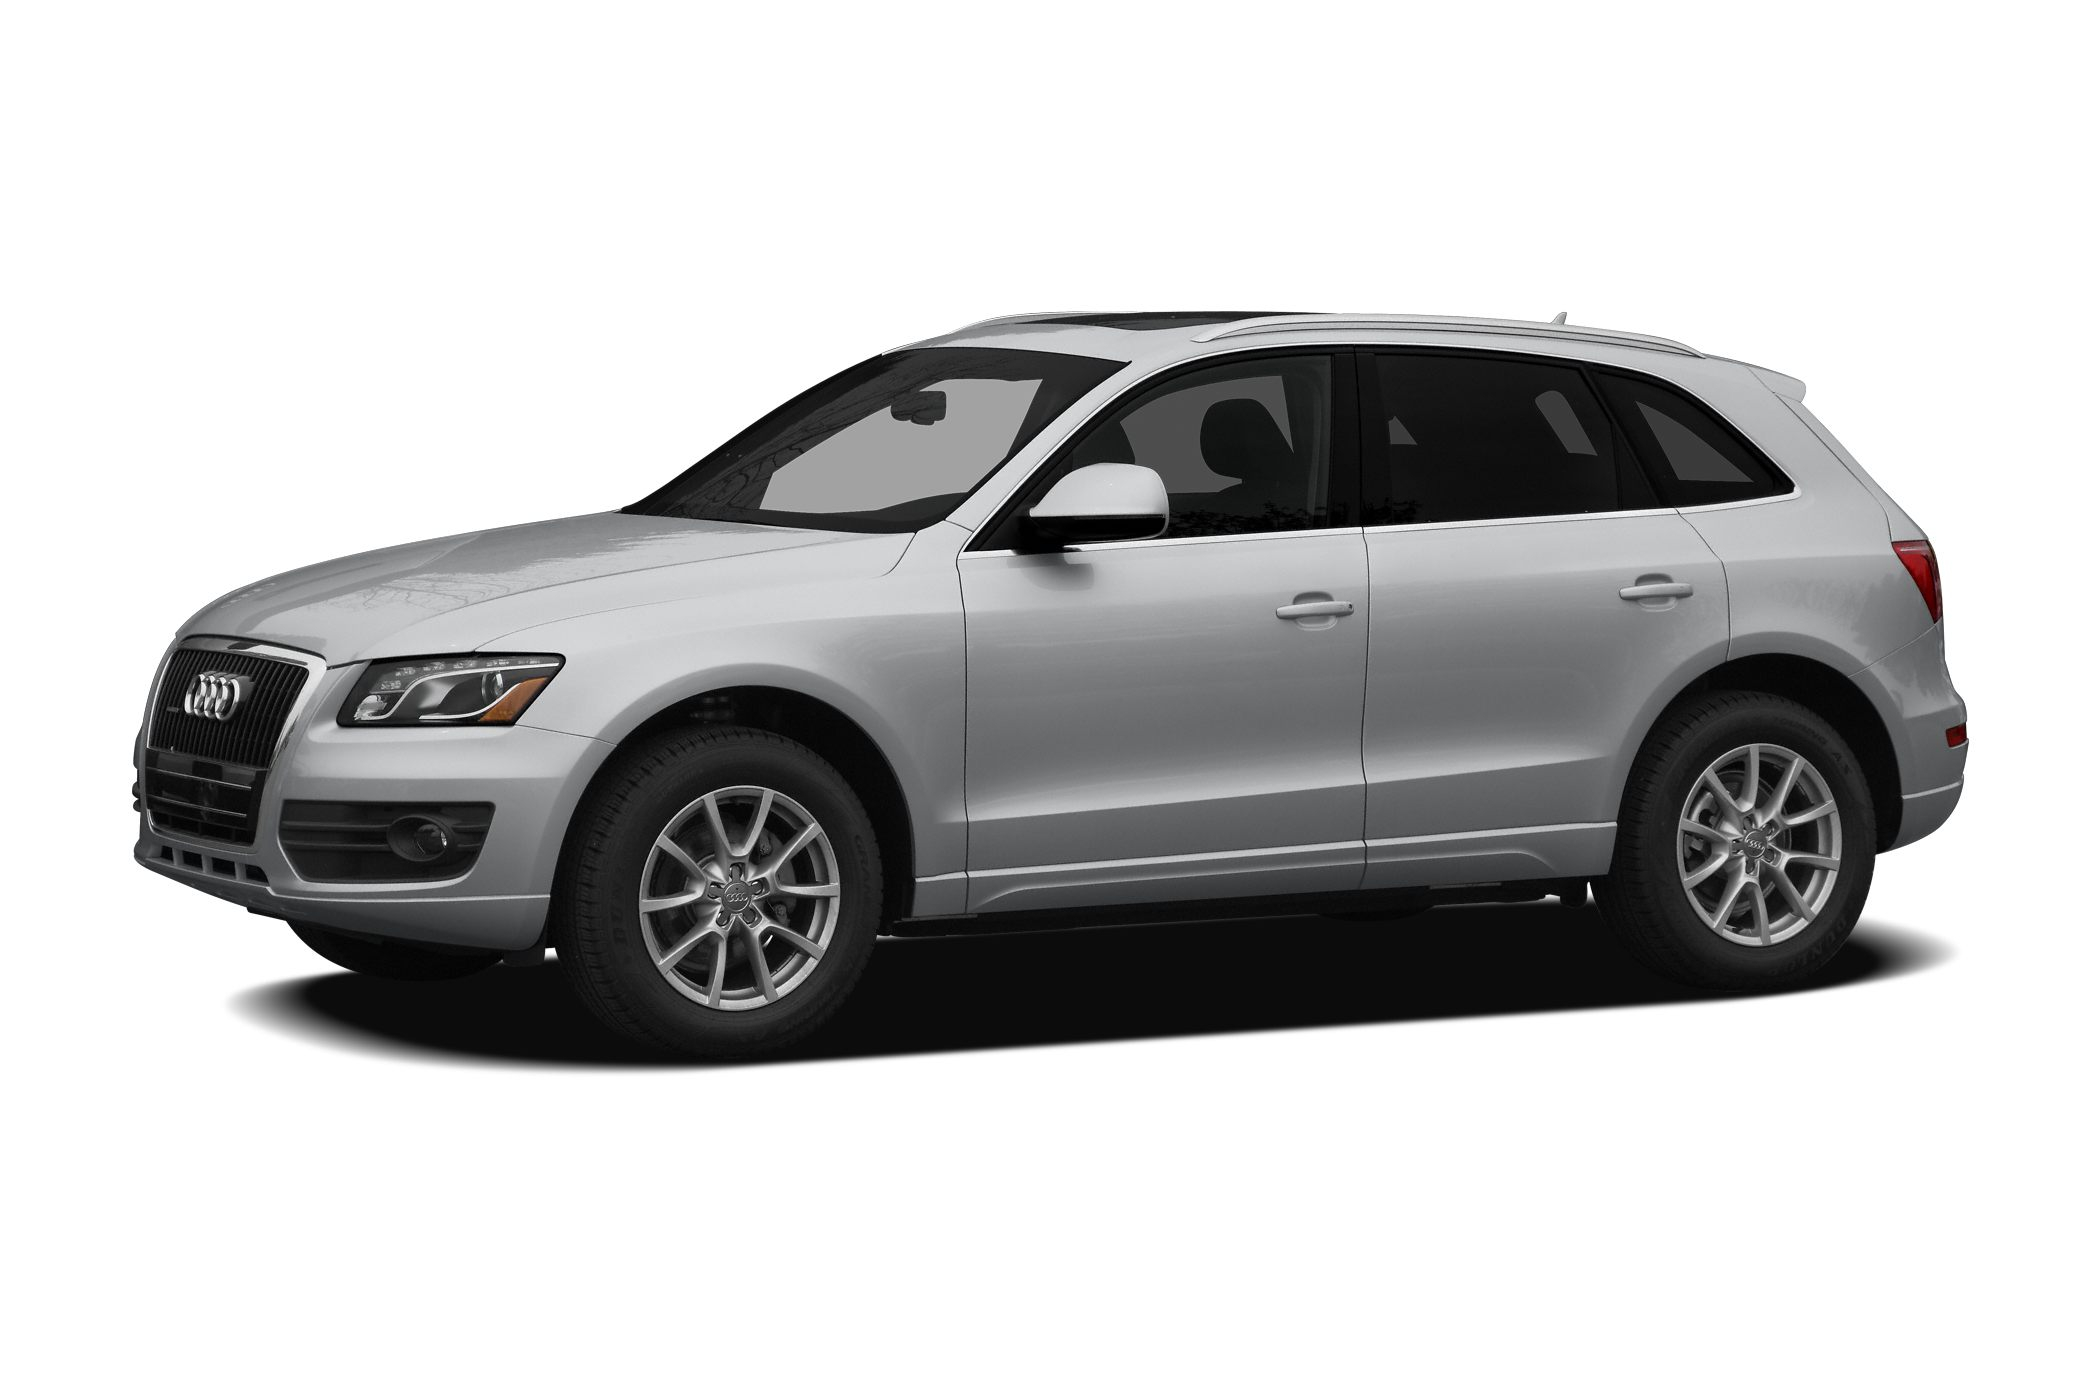 2010 Audi Q5 32 quattro Premium  WHEN IT COMES TO EXCELLENCE IN USED CAR SALESYOU KNOW YOUR